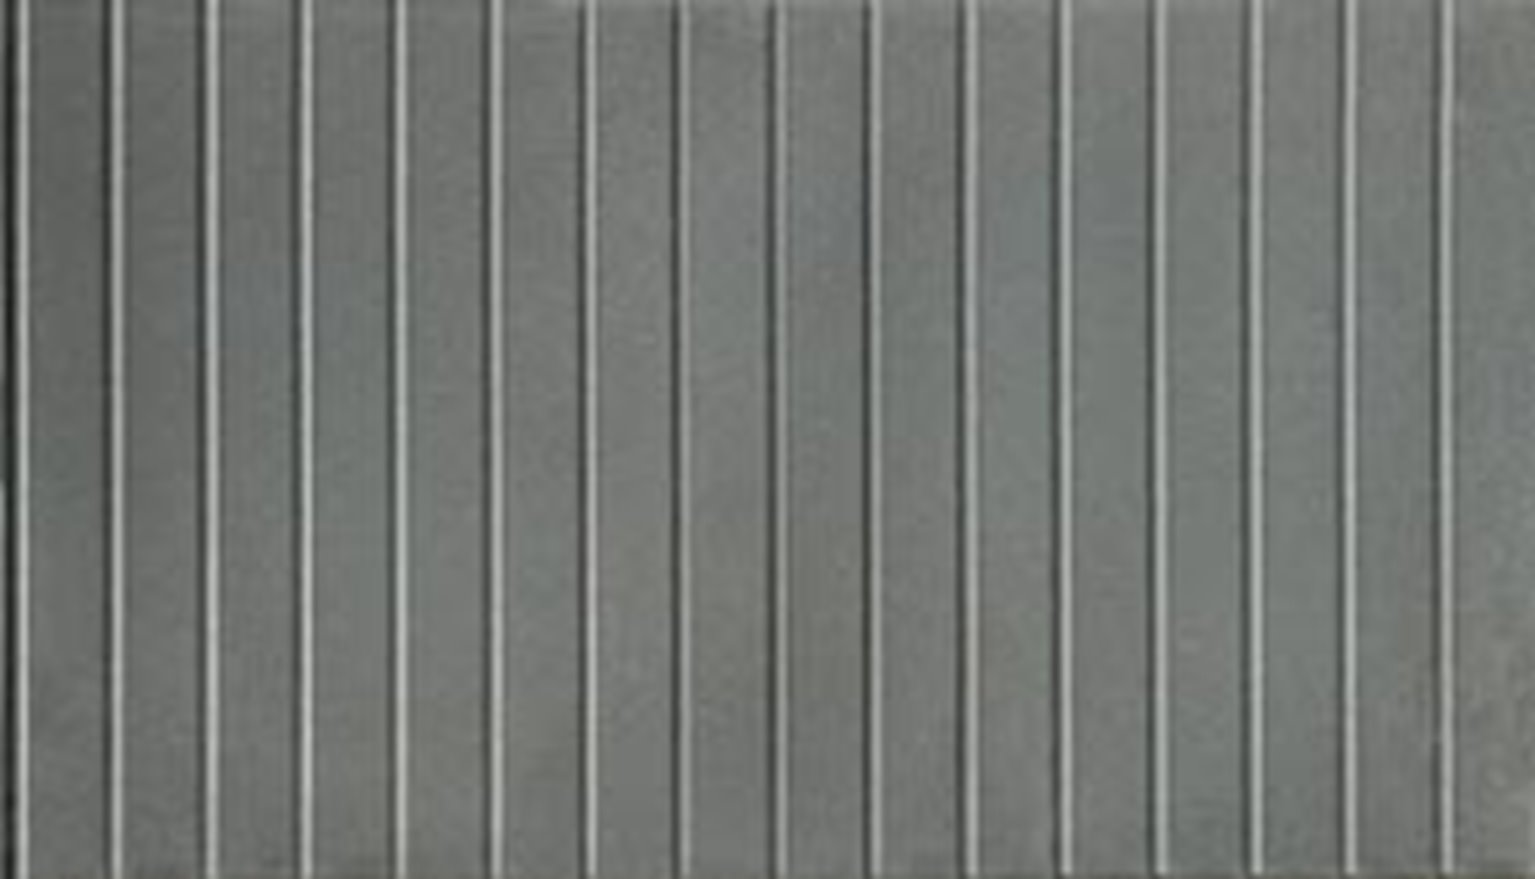 Sheet and Batten Roofing -  injection moulded plastic sheets (4 Sheets)